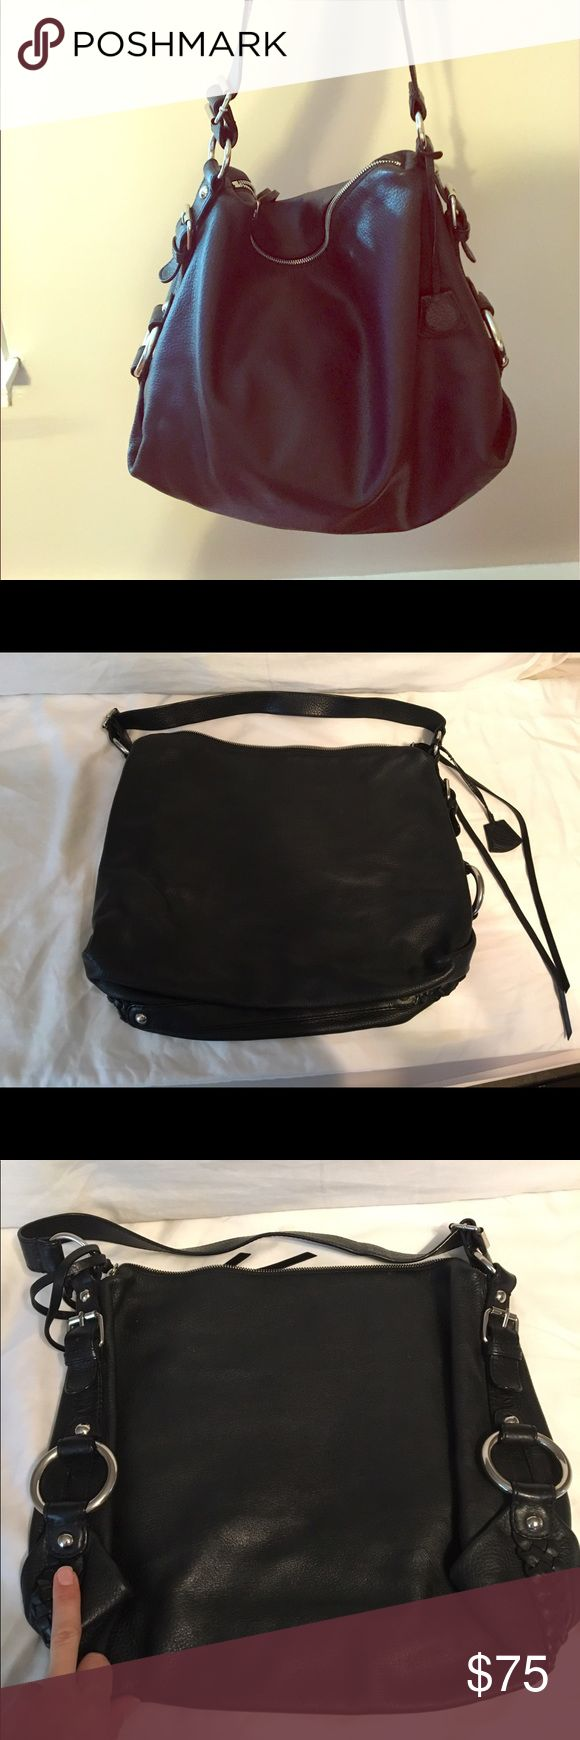 Banana Republic black leather bag Black genuine leather bag with logo interior and silver hardware. Banana Republic Bags Shoulder Bags